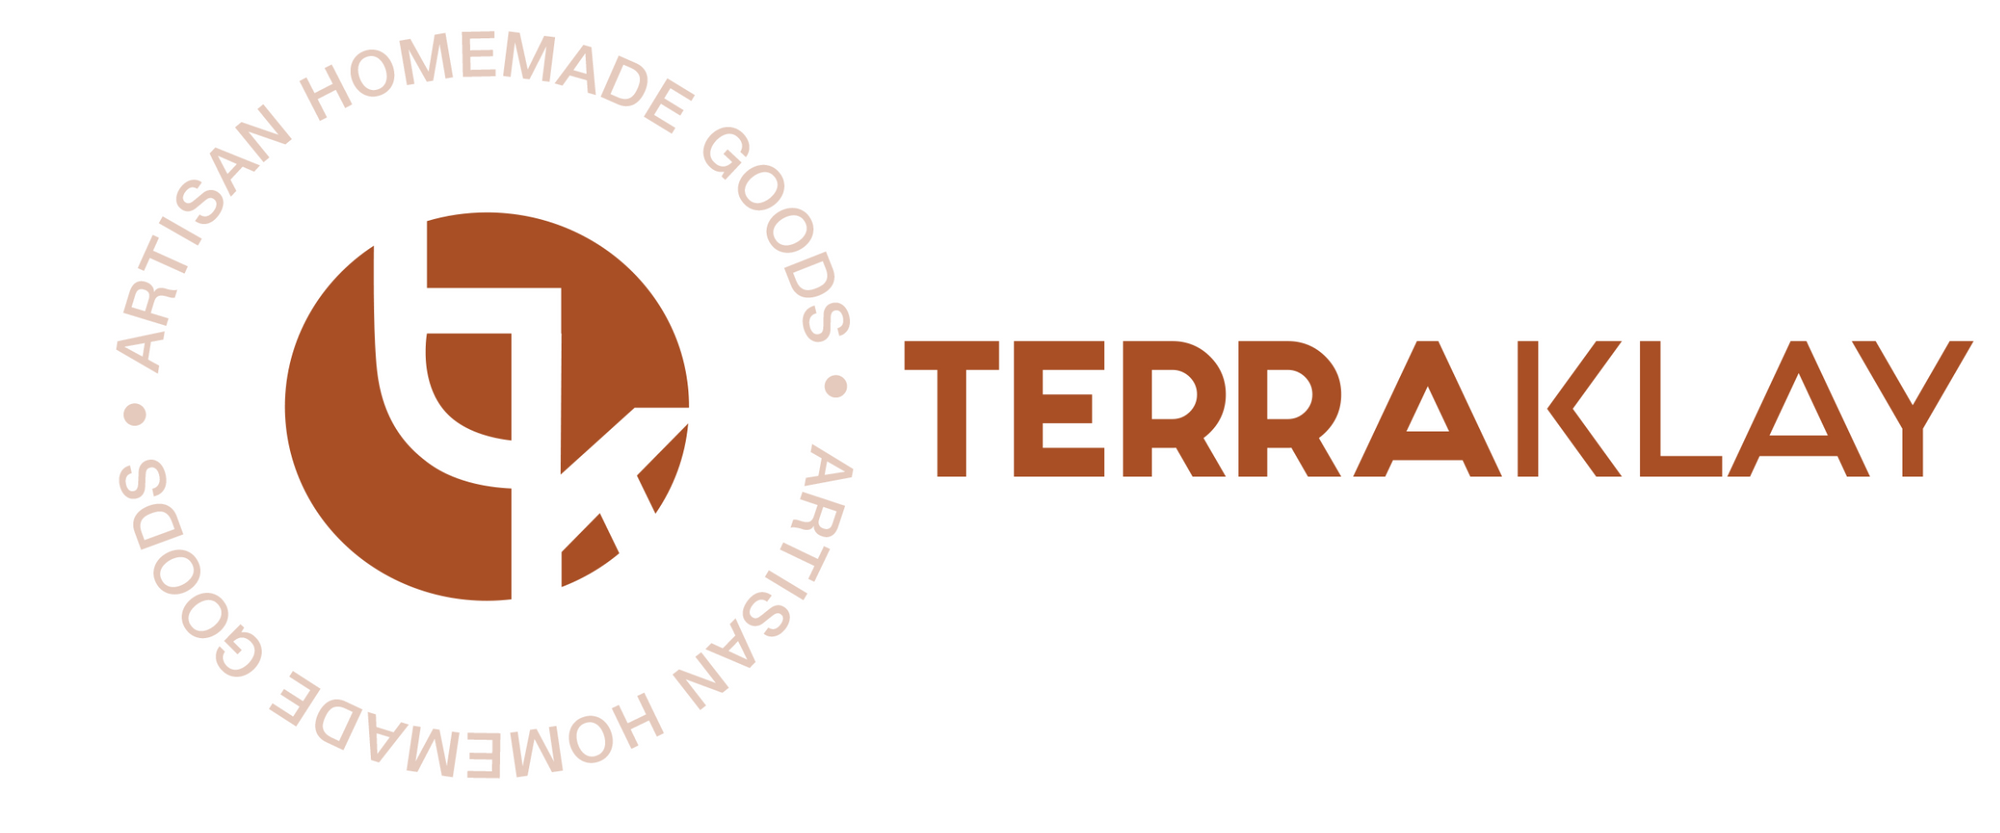 Terraklay.com Artisan handmade home goods and decor logo